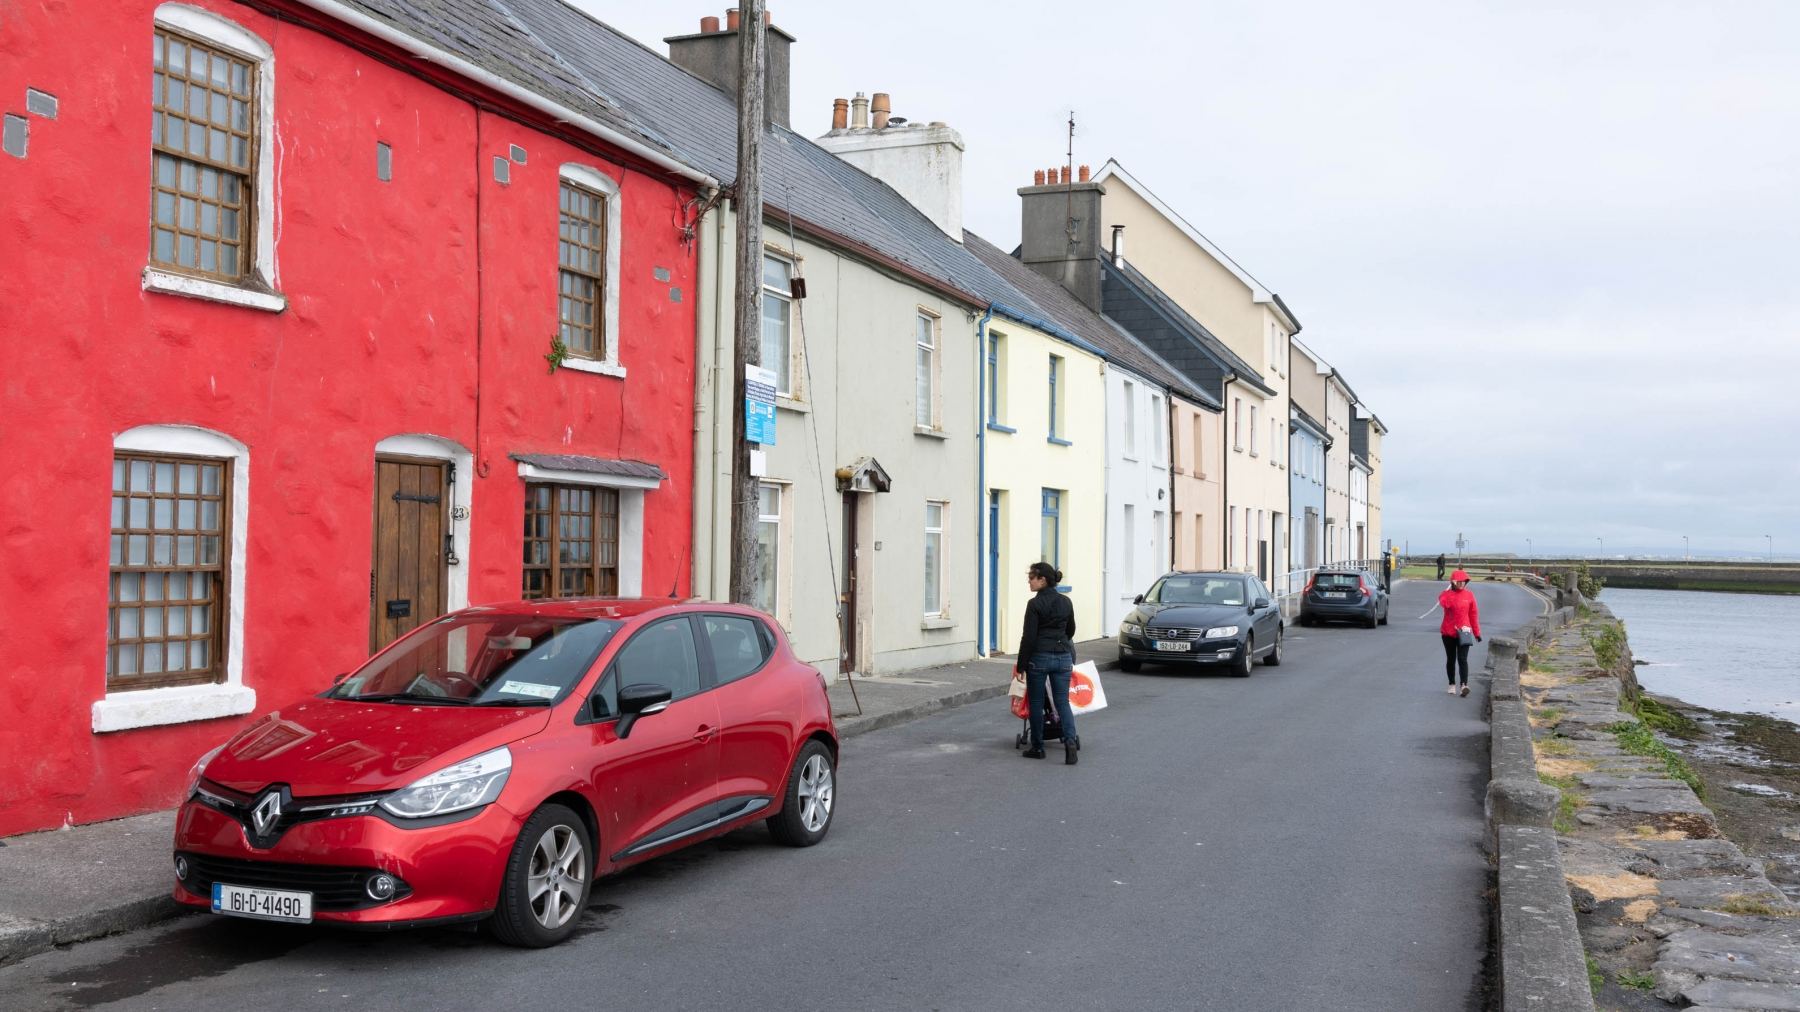 Walking around Galway. All the houses had different color schemes.  Something you'd normally see in parts of Scandinavia or the Caribbean.